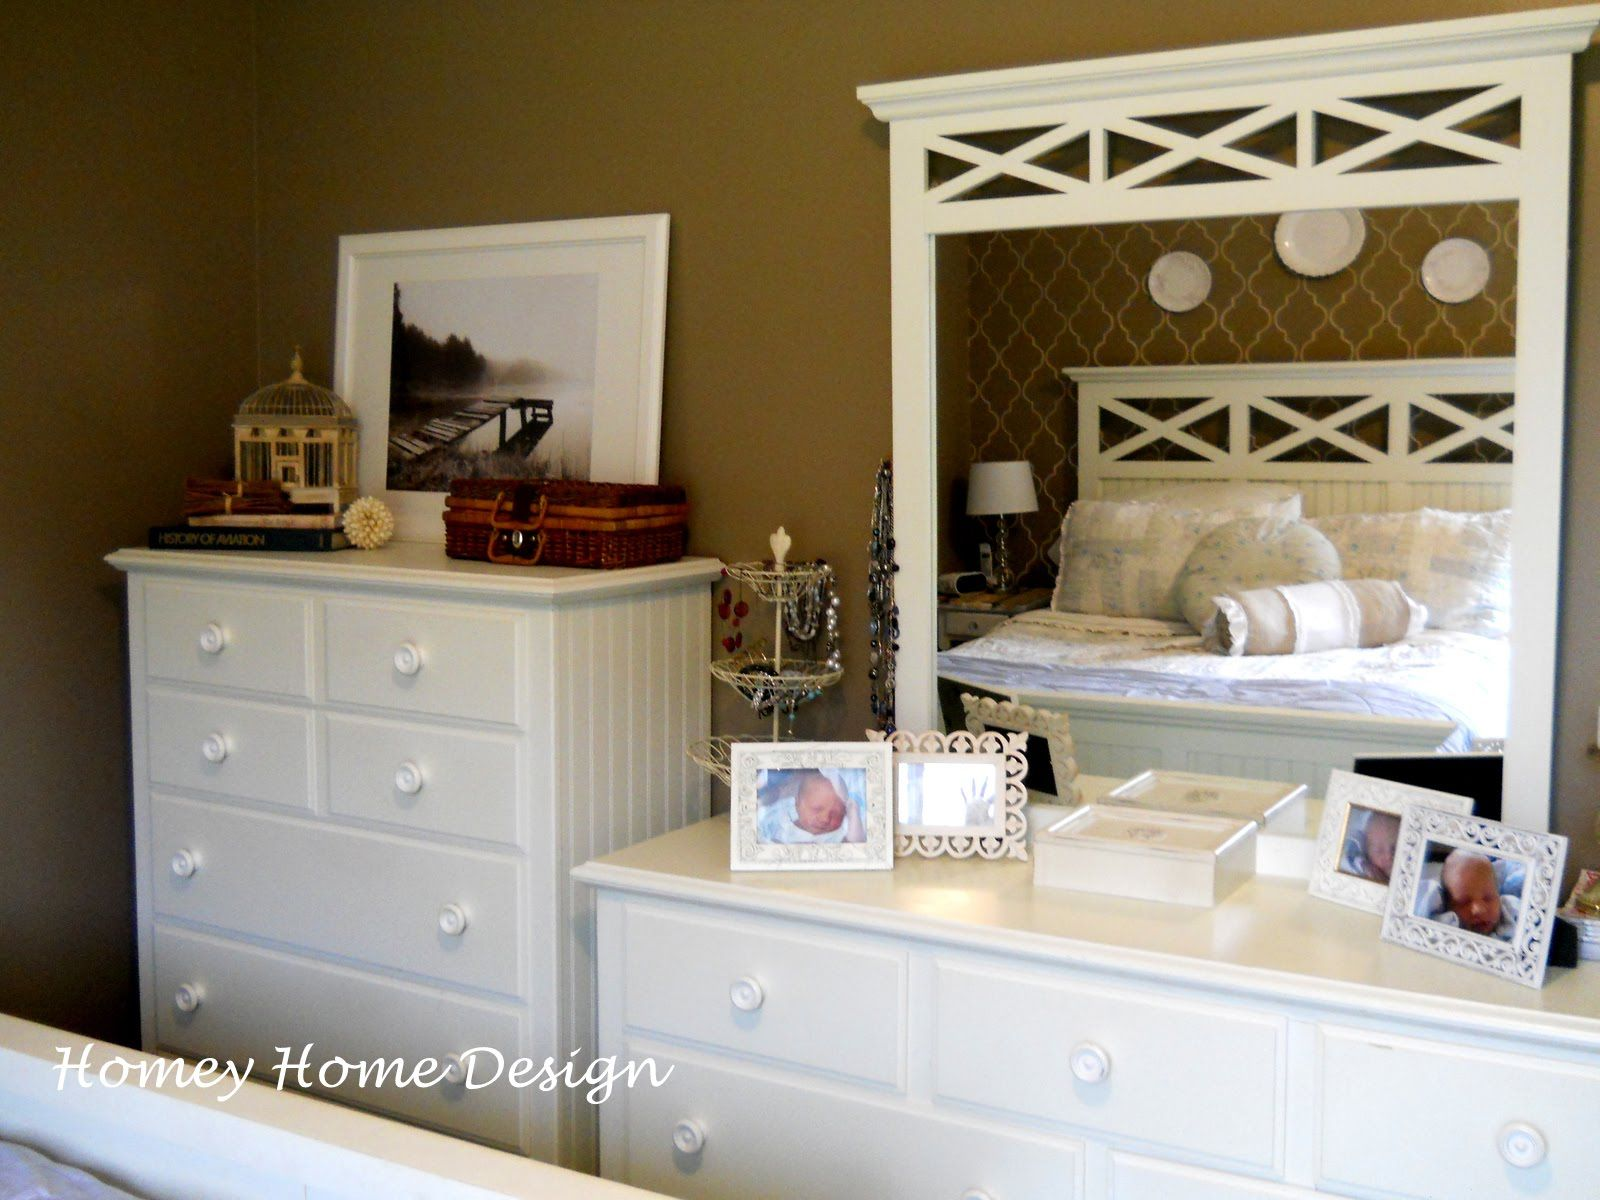 Homey Home Design Dresser Decor Dresser Decor Dresser Decor